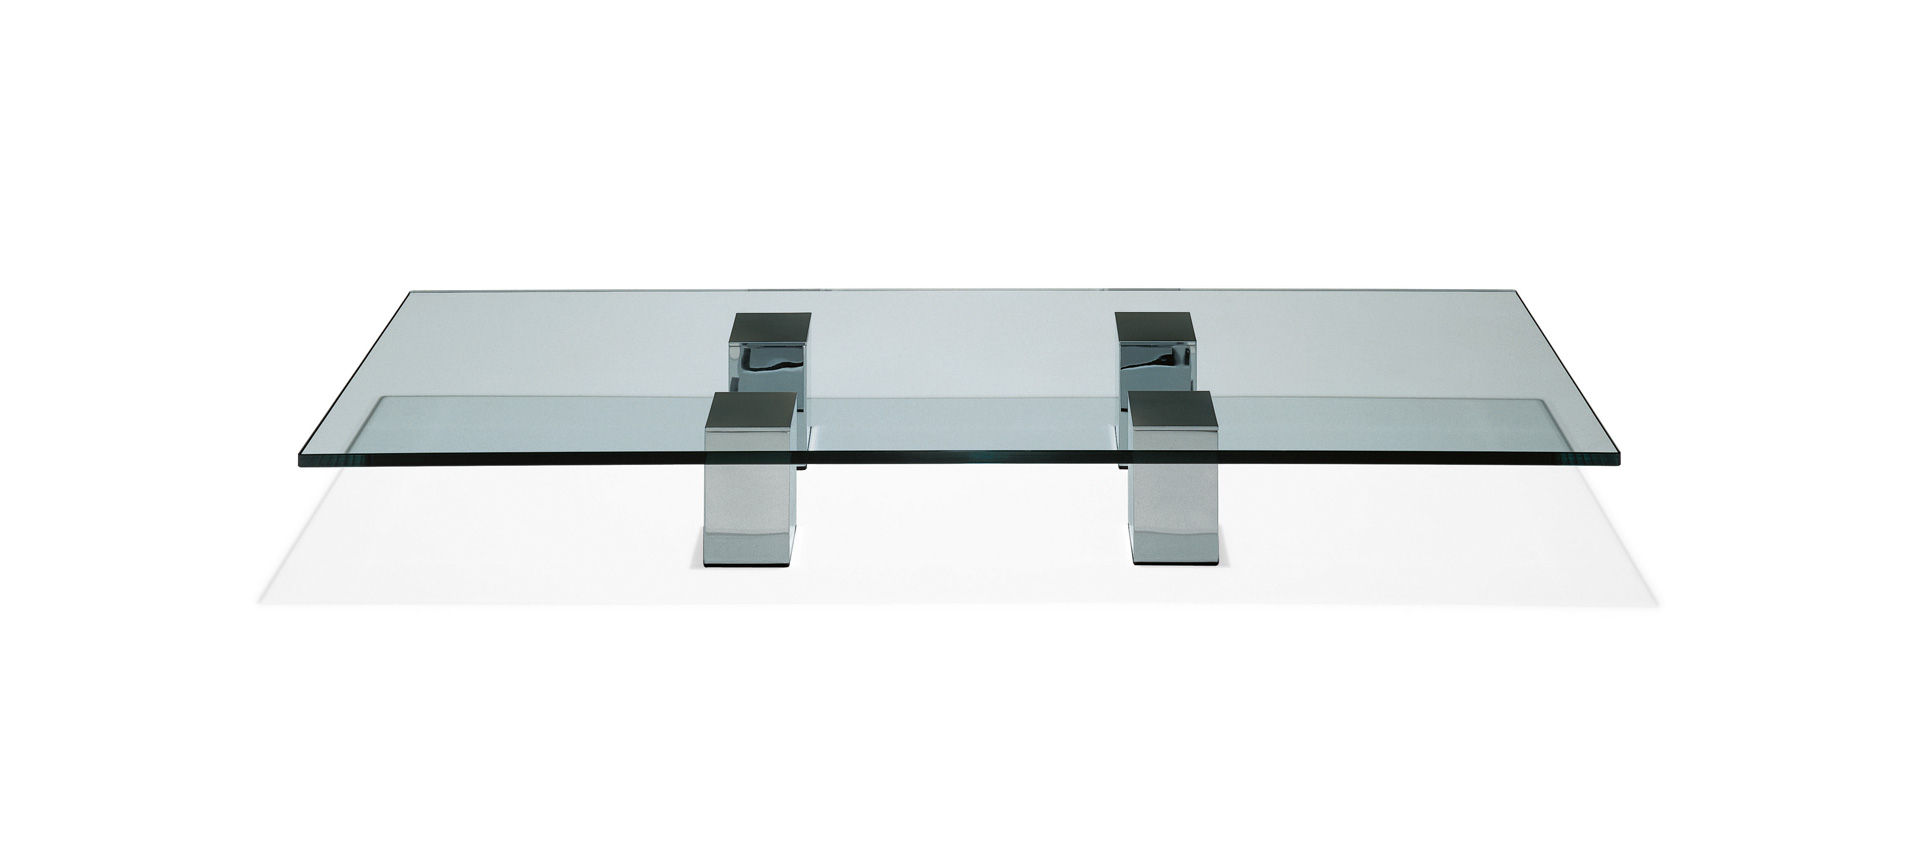 Glass Modern Coffee Table Of The Most Favorite Coffee Tables In The Last Few Years So Are You Interested To Have One (Image 6 of 10)